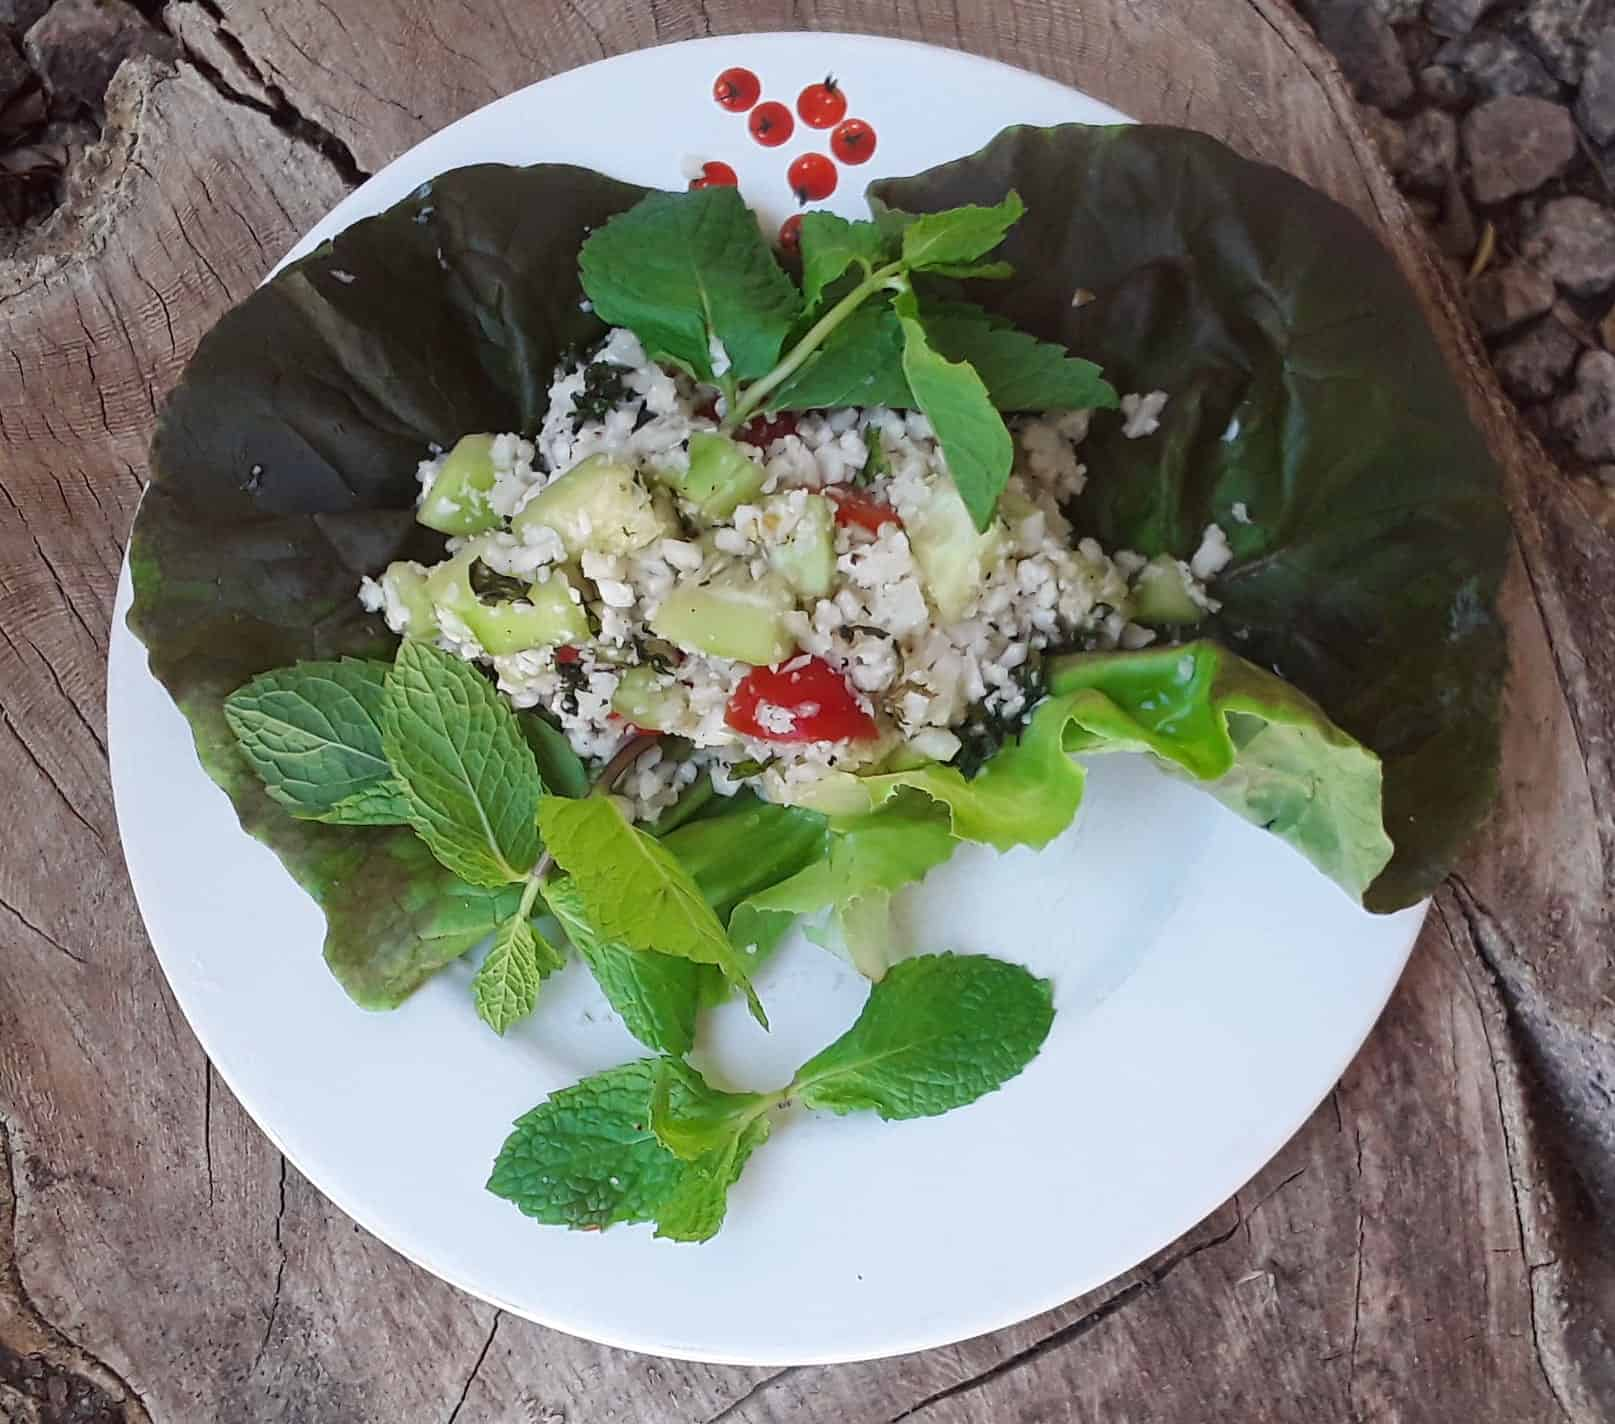 Cauliflower tabbouleh salad on lettuce leaves with fresh mint.